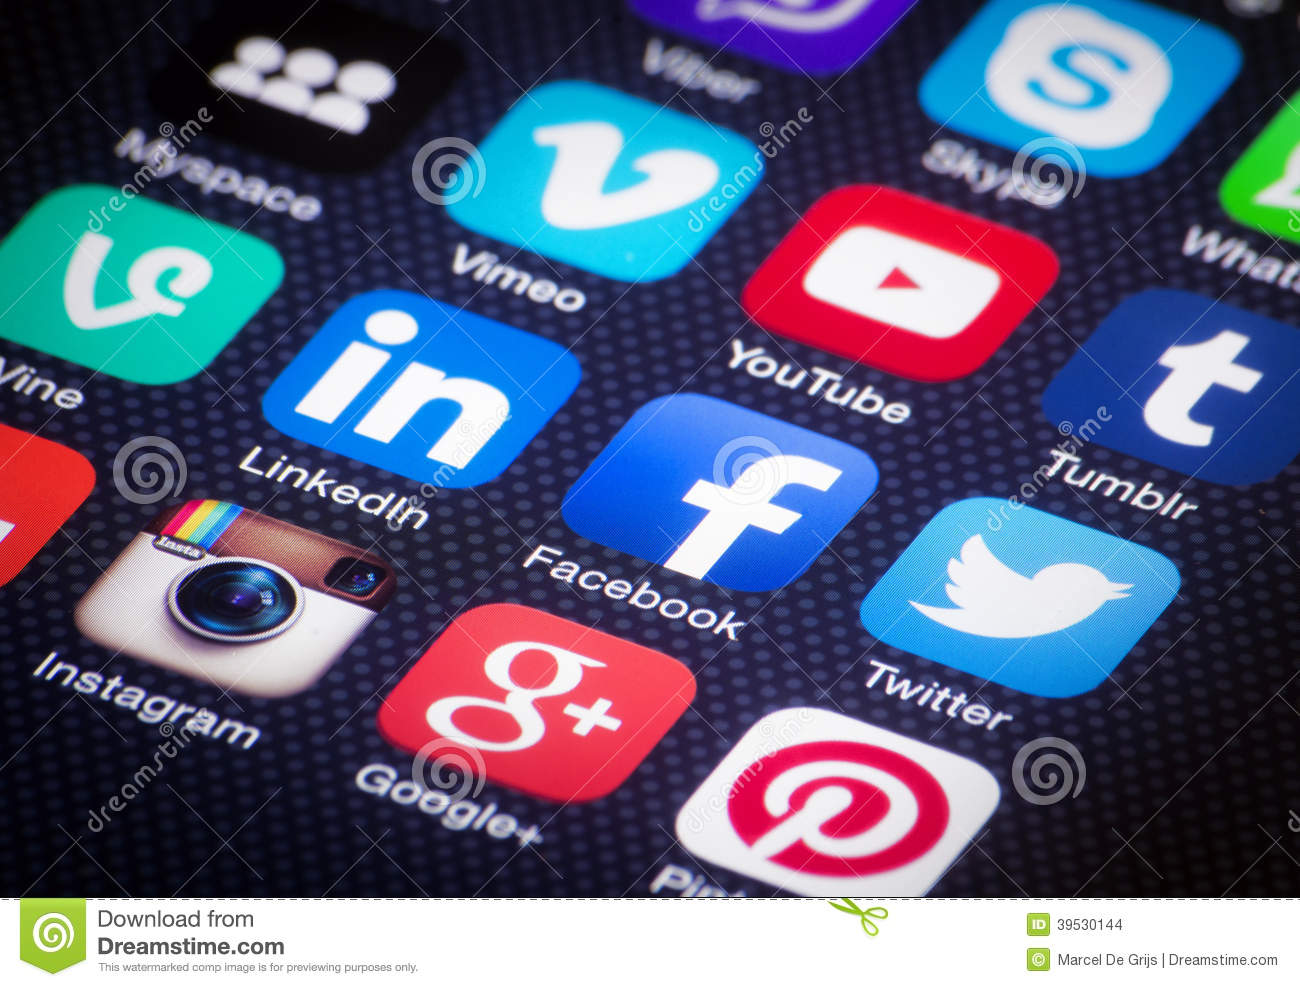 Cell Phone Icon >> Social Media Icons On IPhone Screen. Editorial Stock Image - Image: 39530144